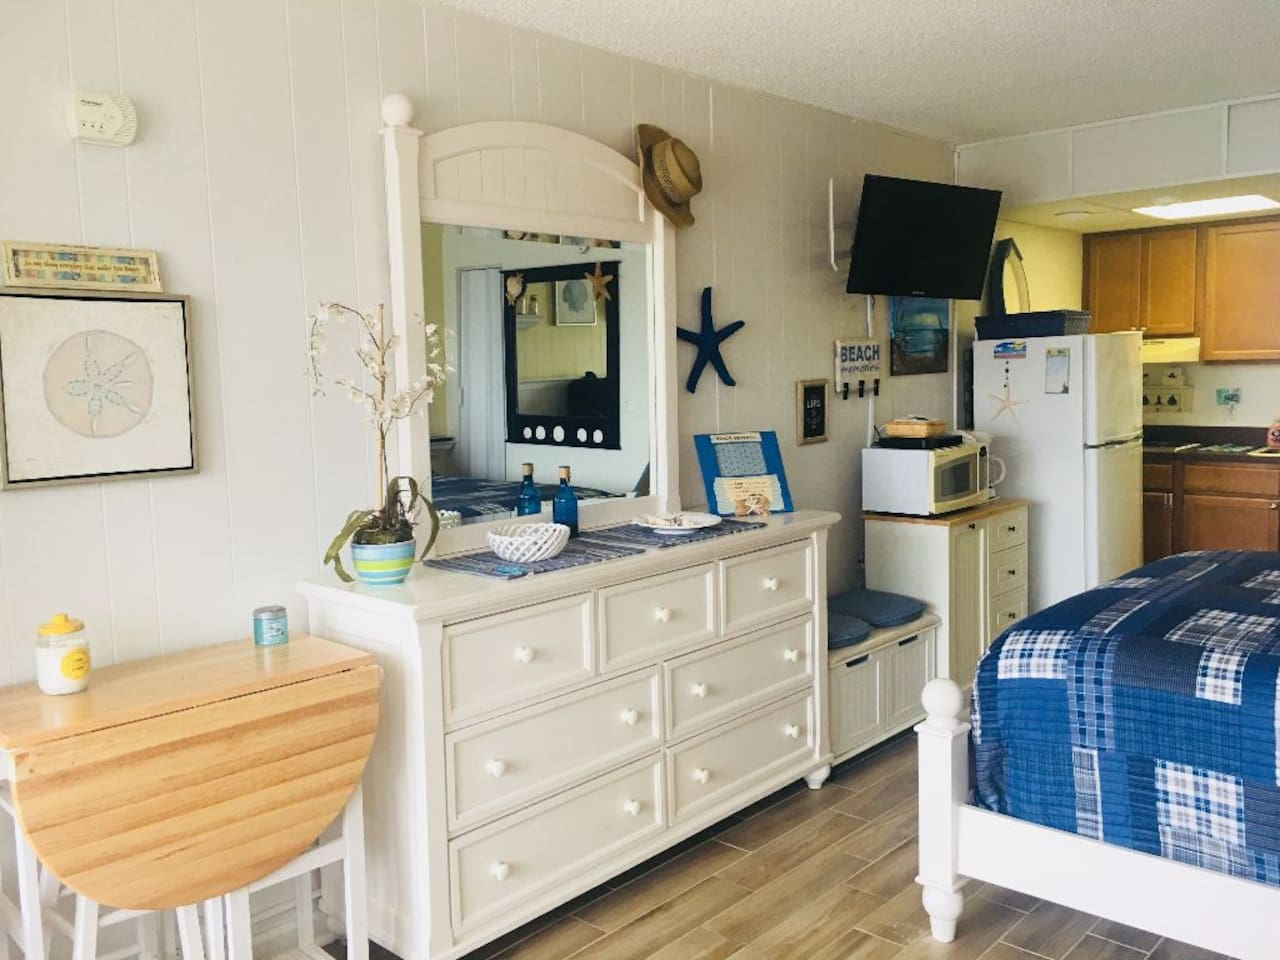 Immaculate condo in Ocean City, NJ